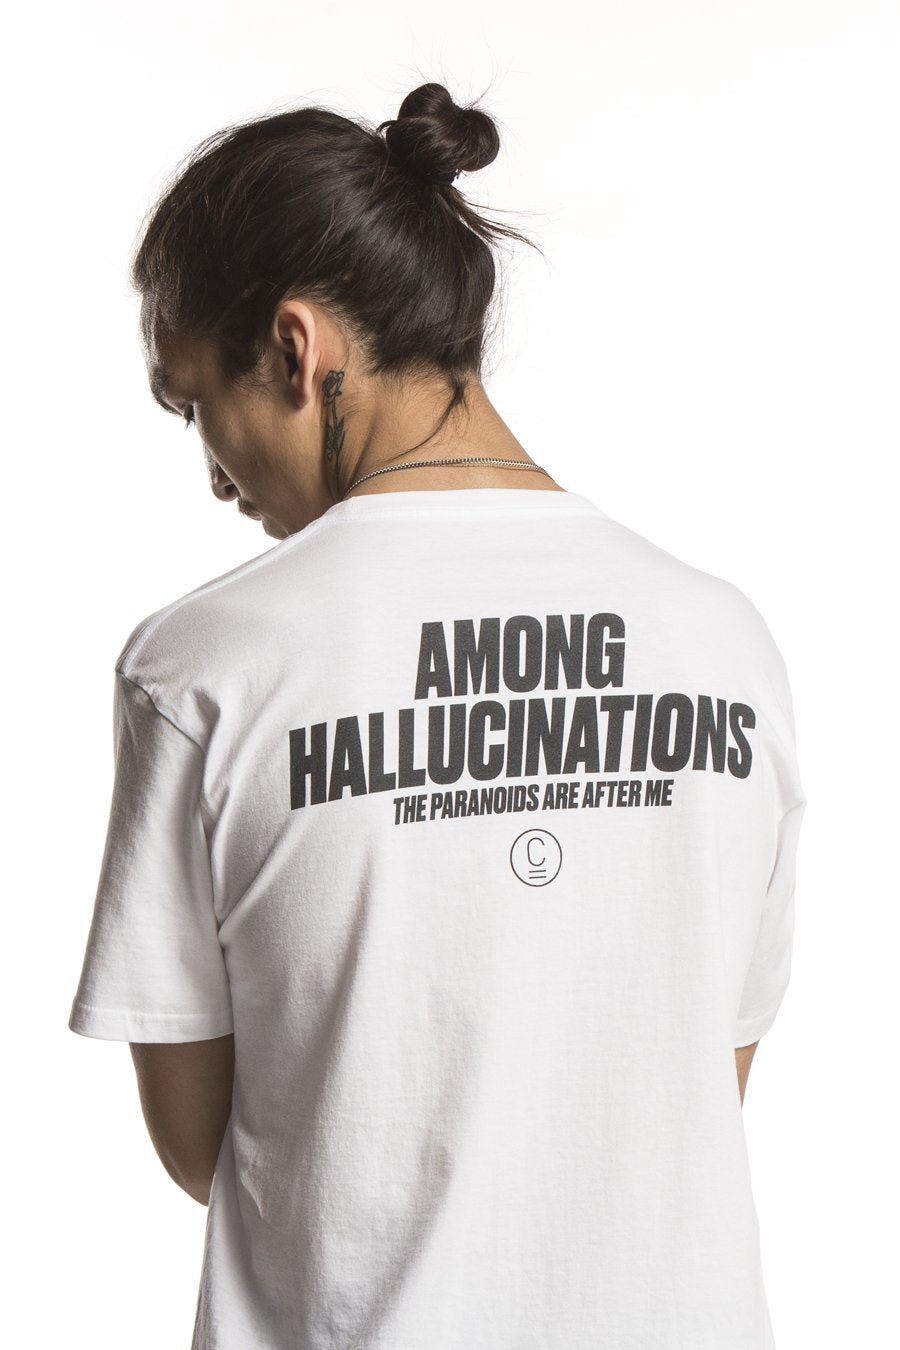 candorofficial - HALLUCINATIONS T-SHIRT - T-Shirts